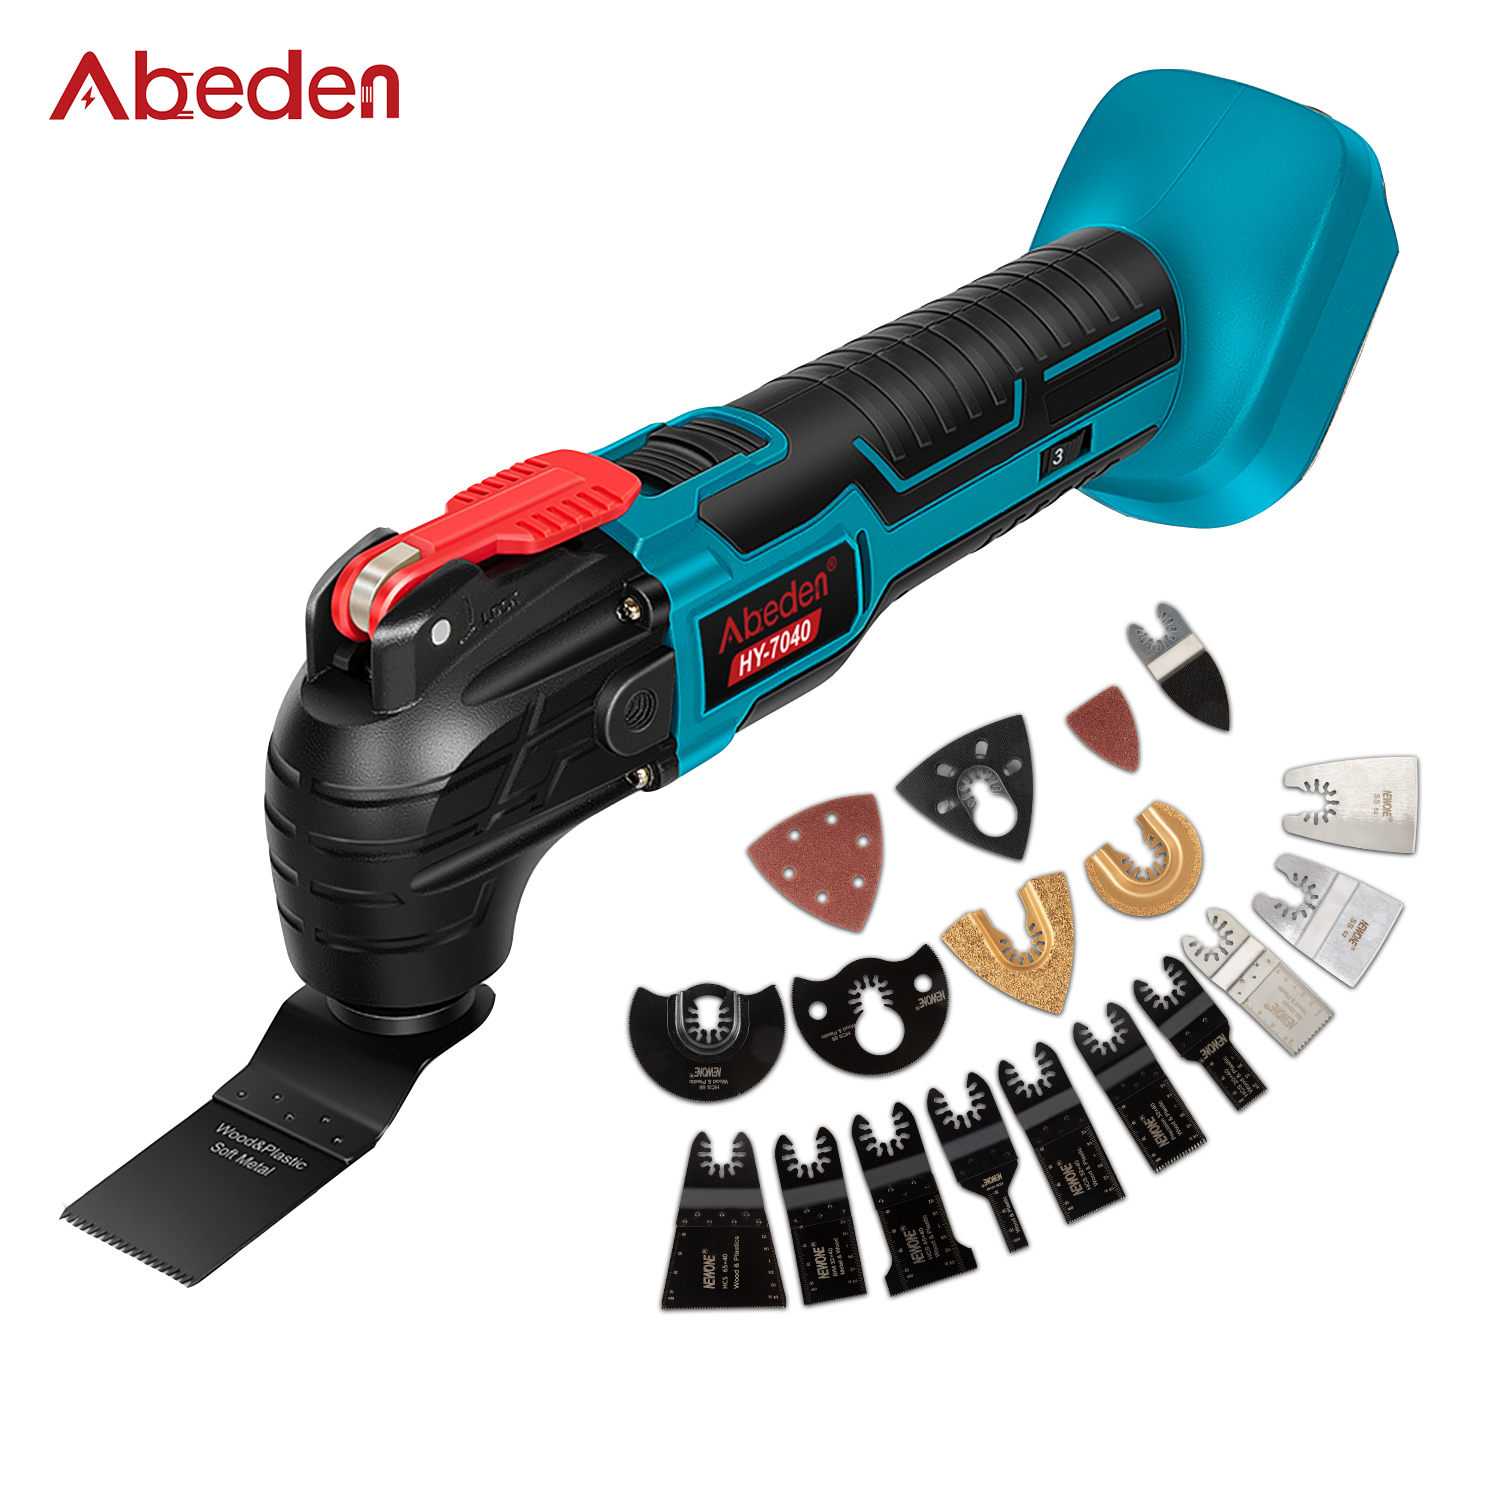 Multifunction Tool Oscillating Multi-Tools for Makita 18V Battery Variable Speed Renovator Home Decoration Trimmer Electric Saw